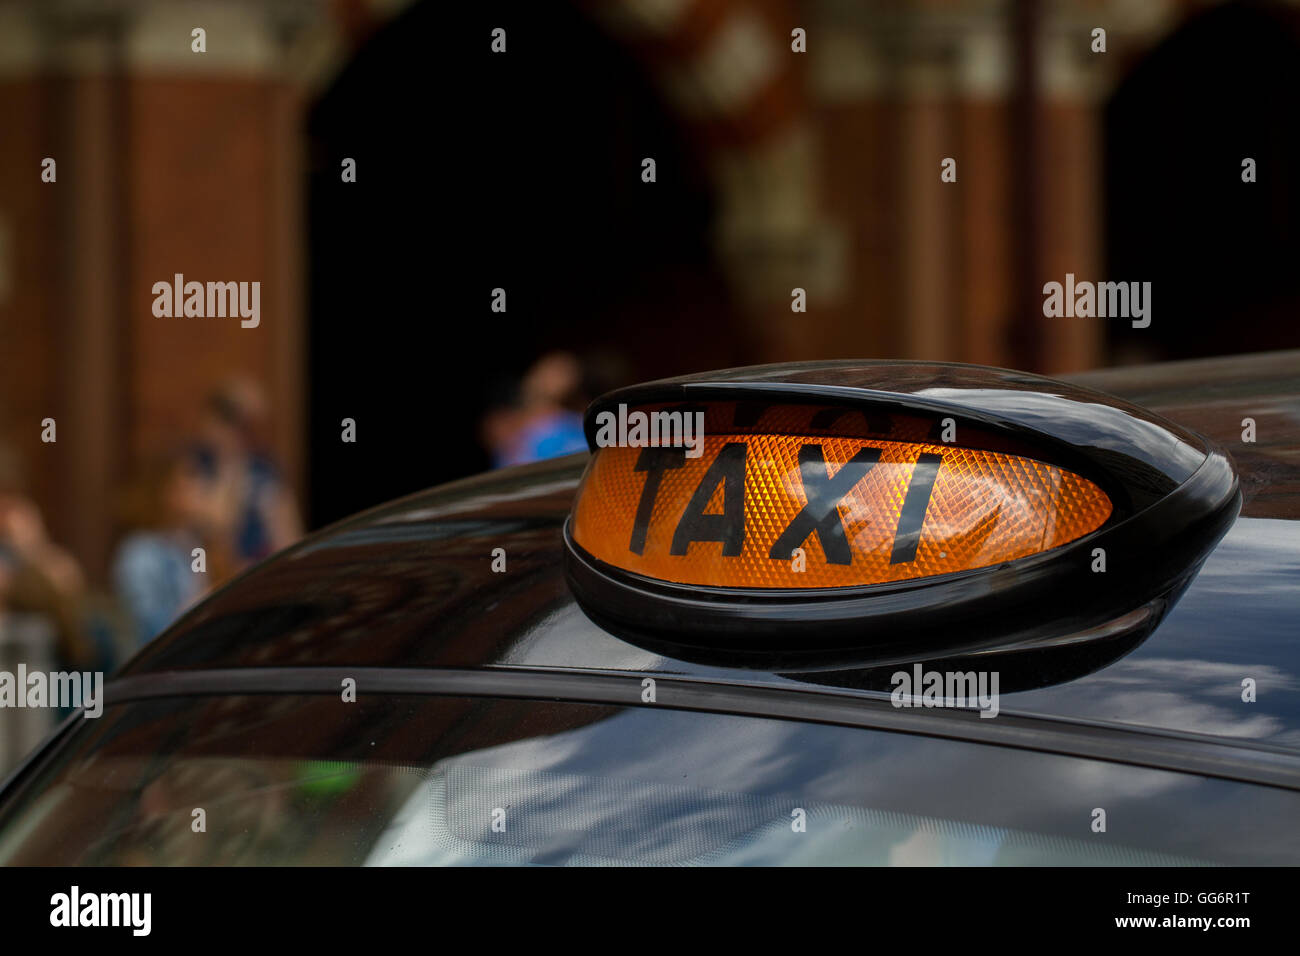 The illuminated orange Taxi sign on the roof of a London black cab with city streets in the background. - Stock Image